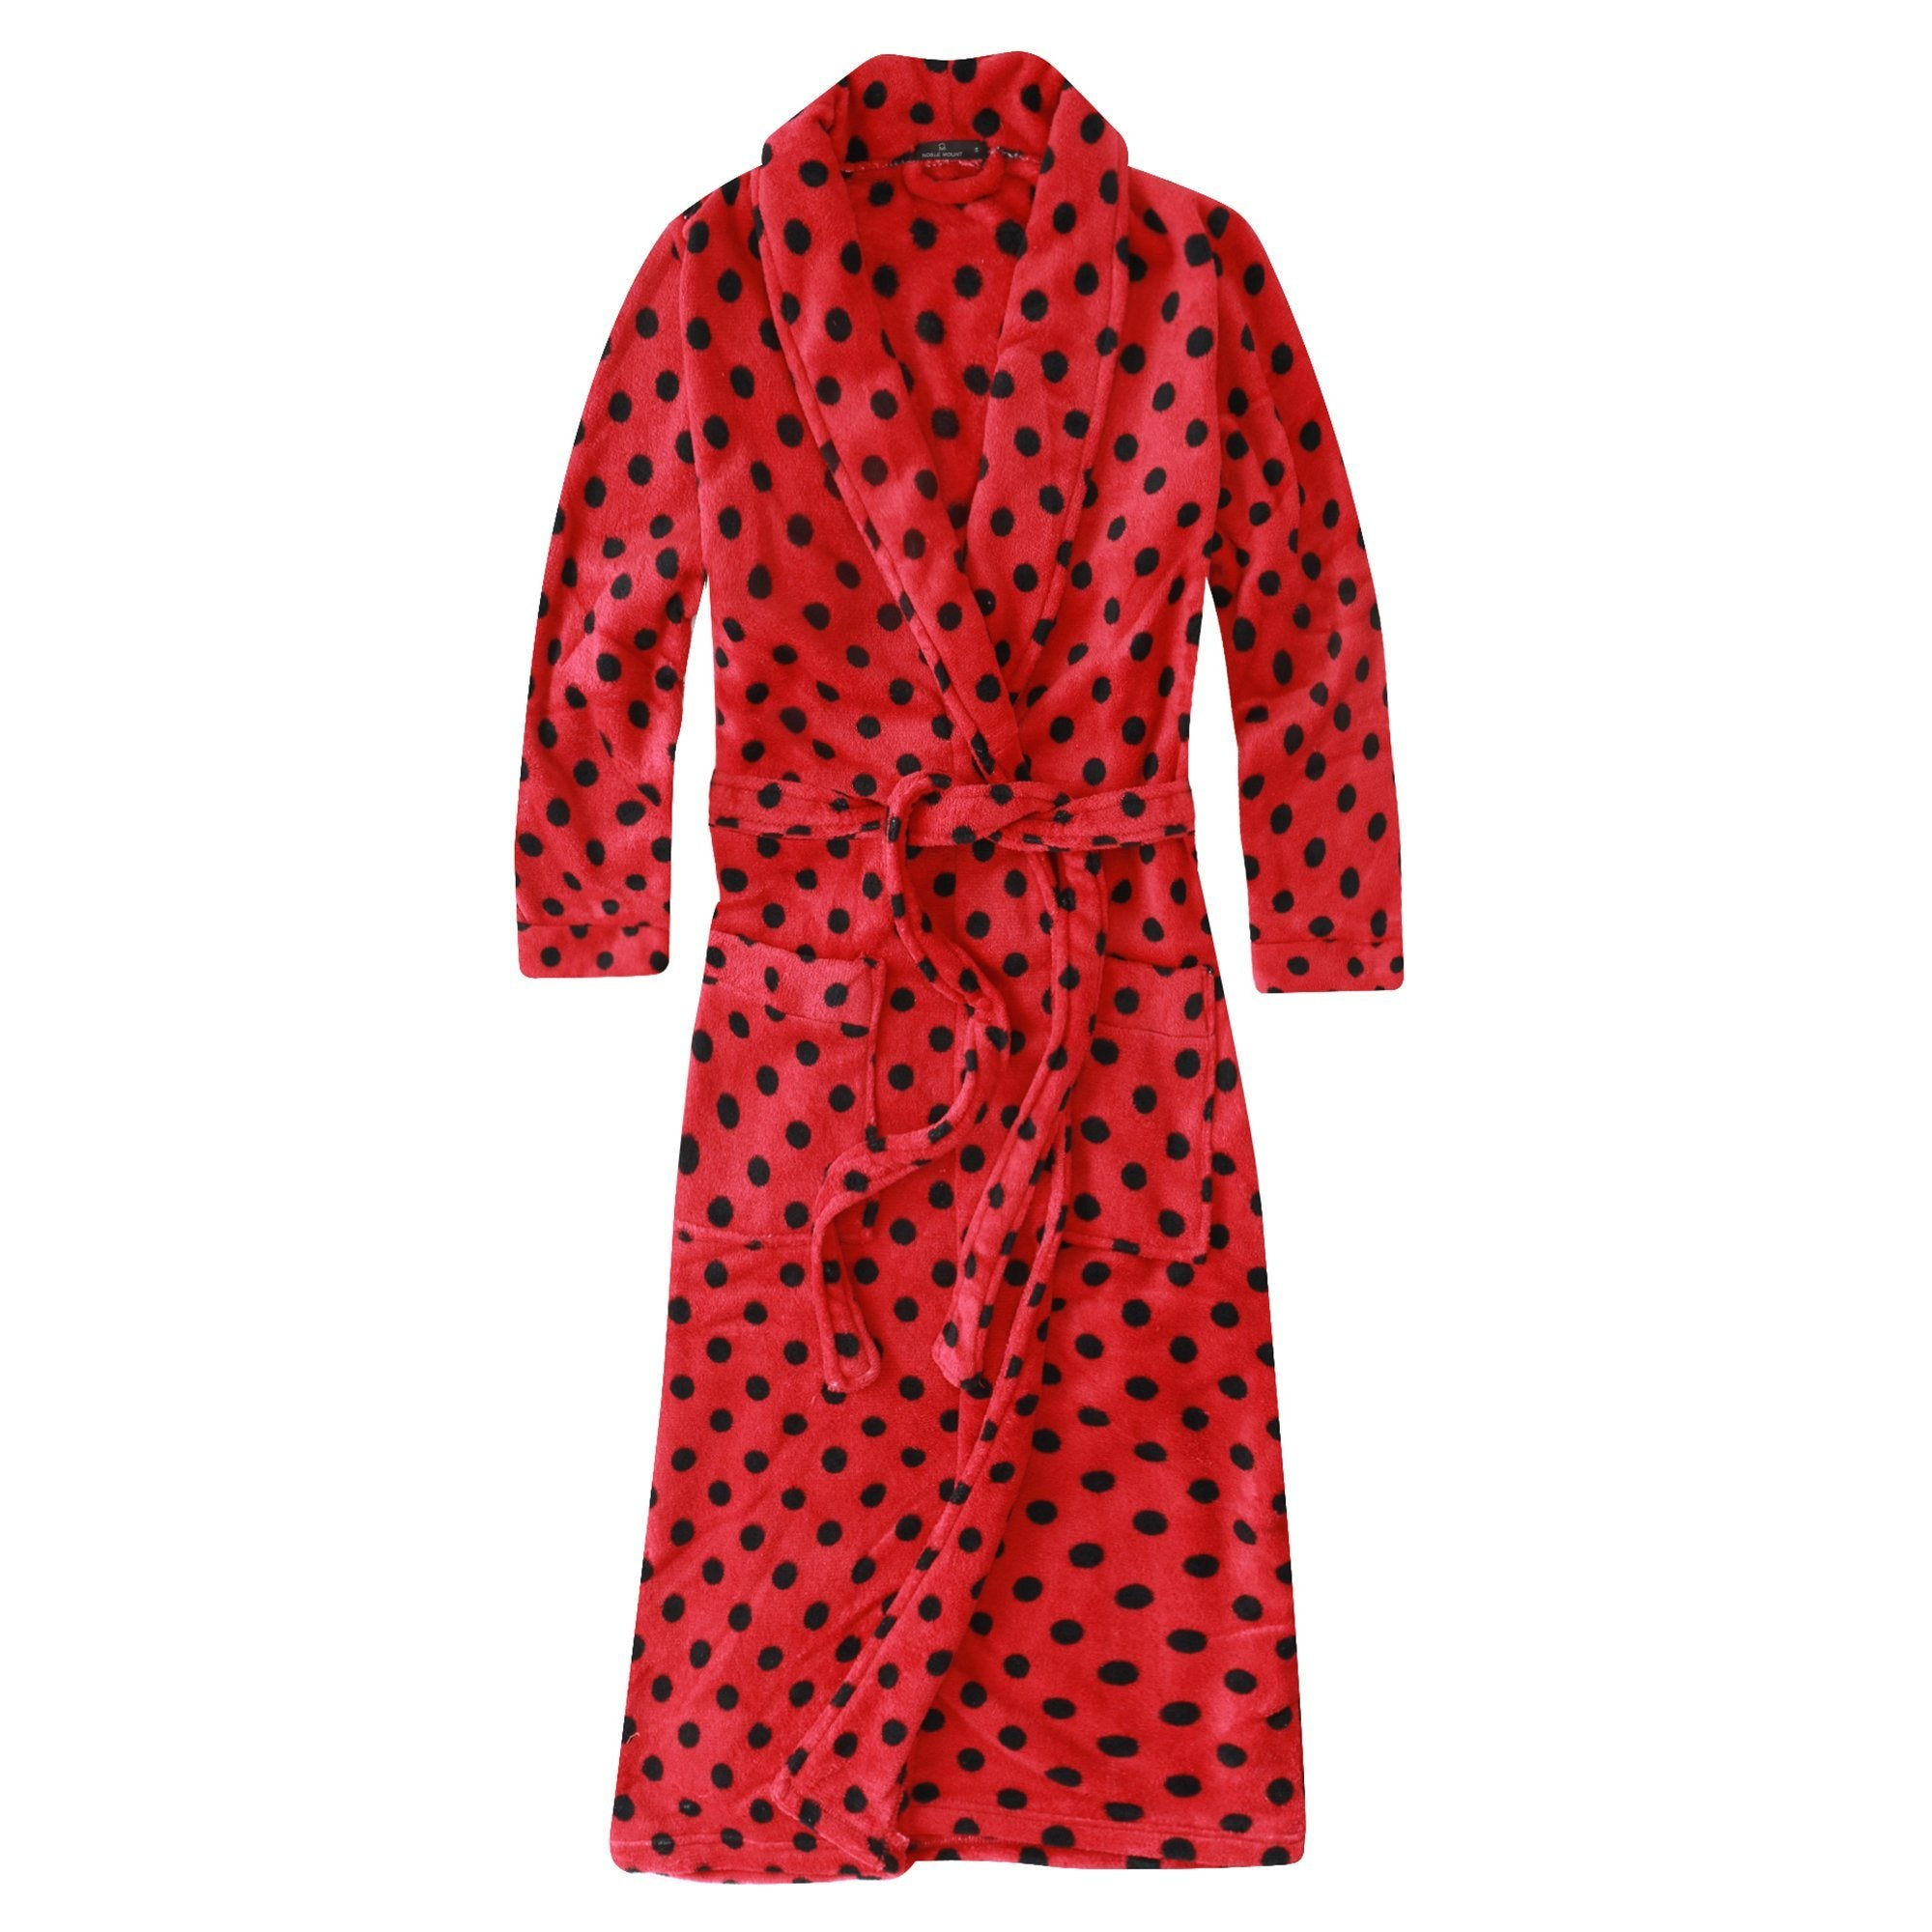 Women's Premium Coral Fleece Plush Spa Robe